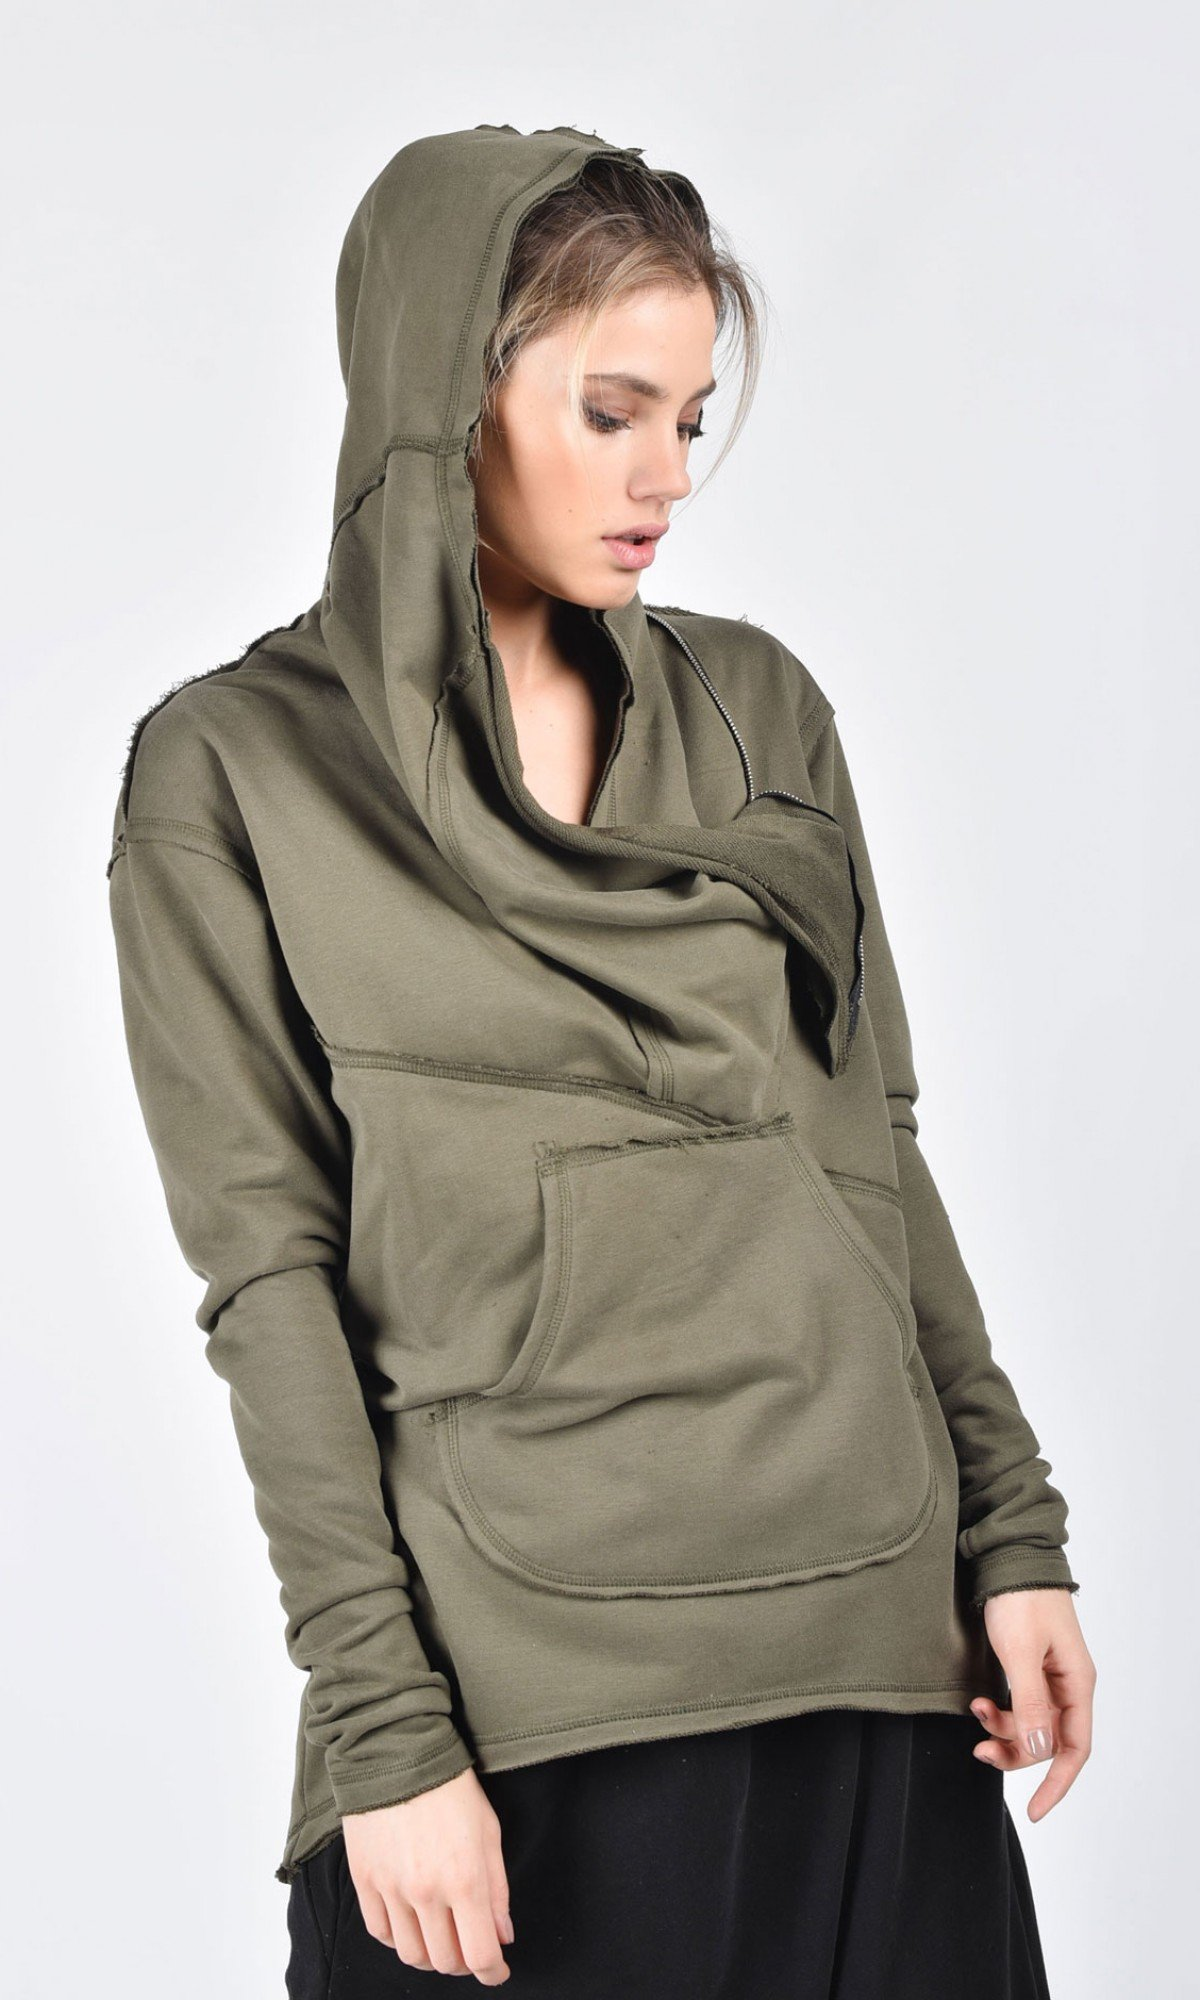 Extravagant Asymmetric Cotton Hooded Sweatshirt A08533